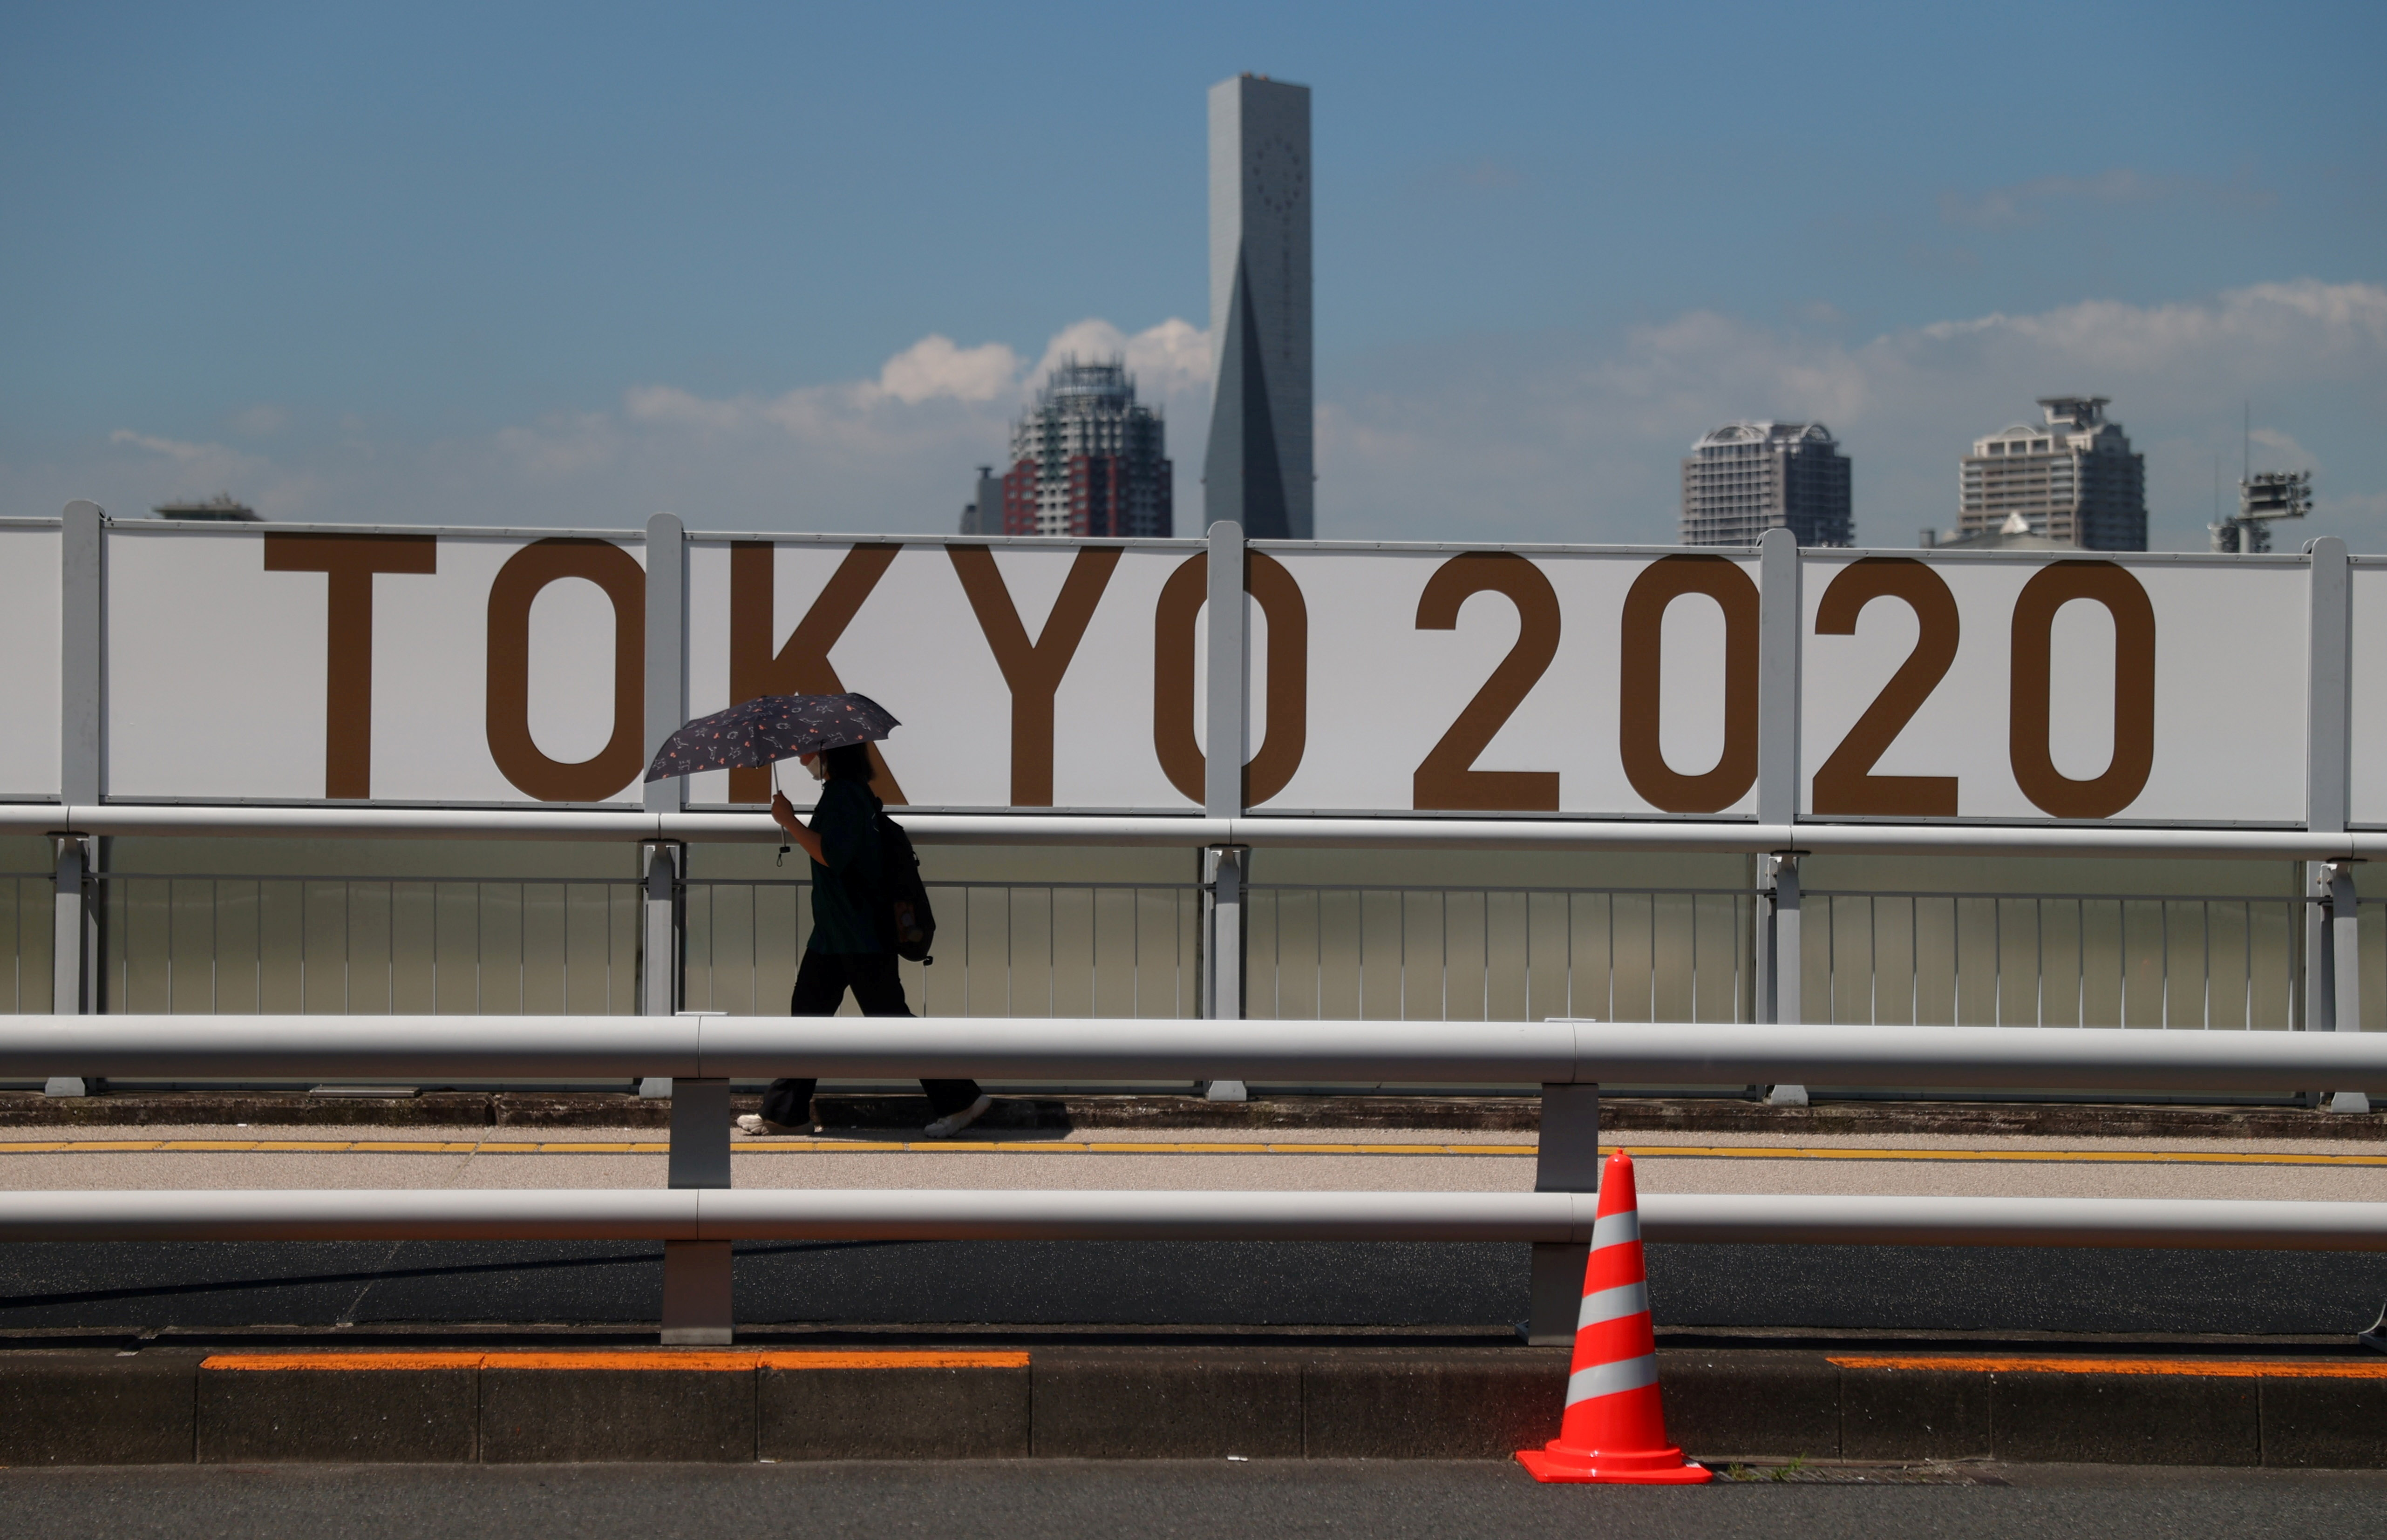 Tokyo 2020 Olympics Preview - Tokyo, Japan - July 19, 2021 A woman shelters from the sun under an umbrella as she walks past Olympics signage REUTERS/Thomas Peter/File Photo